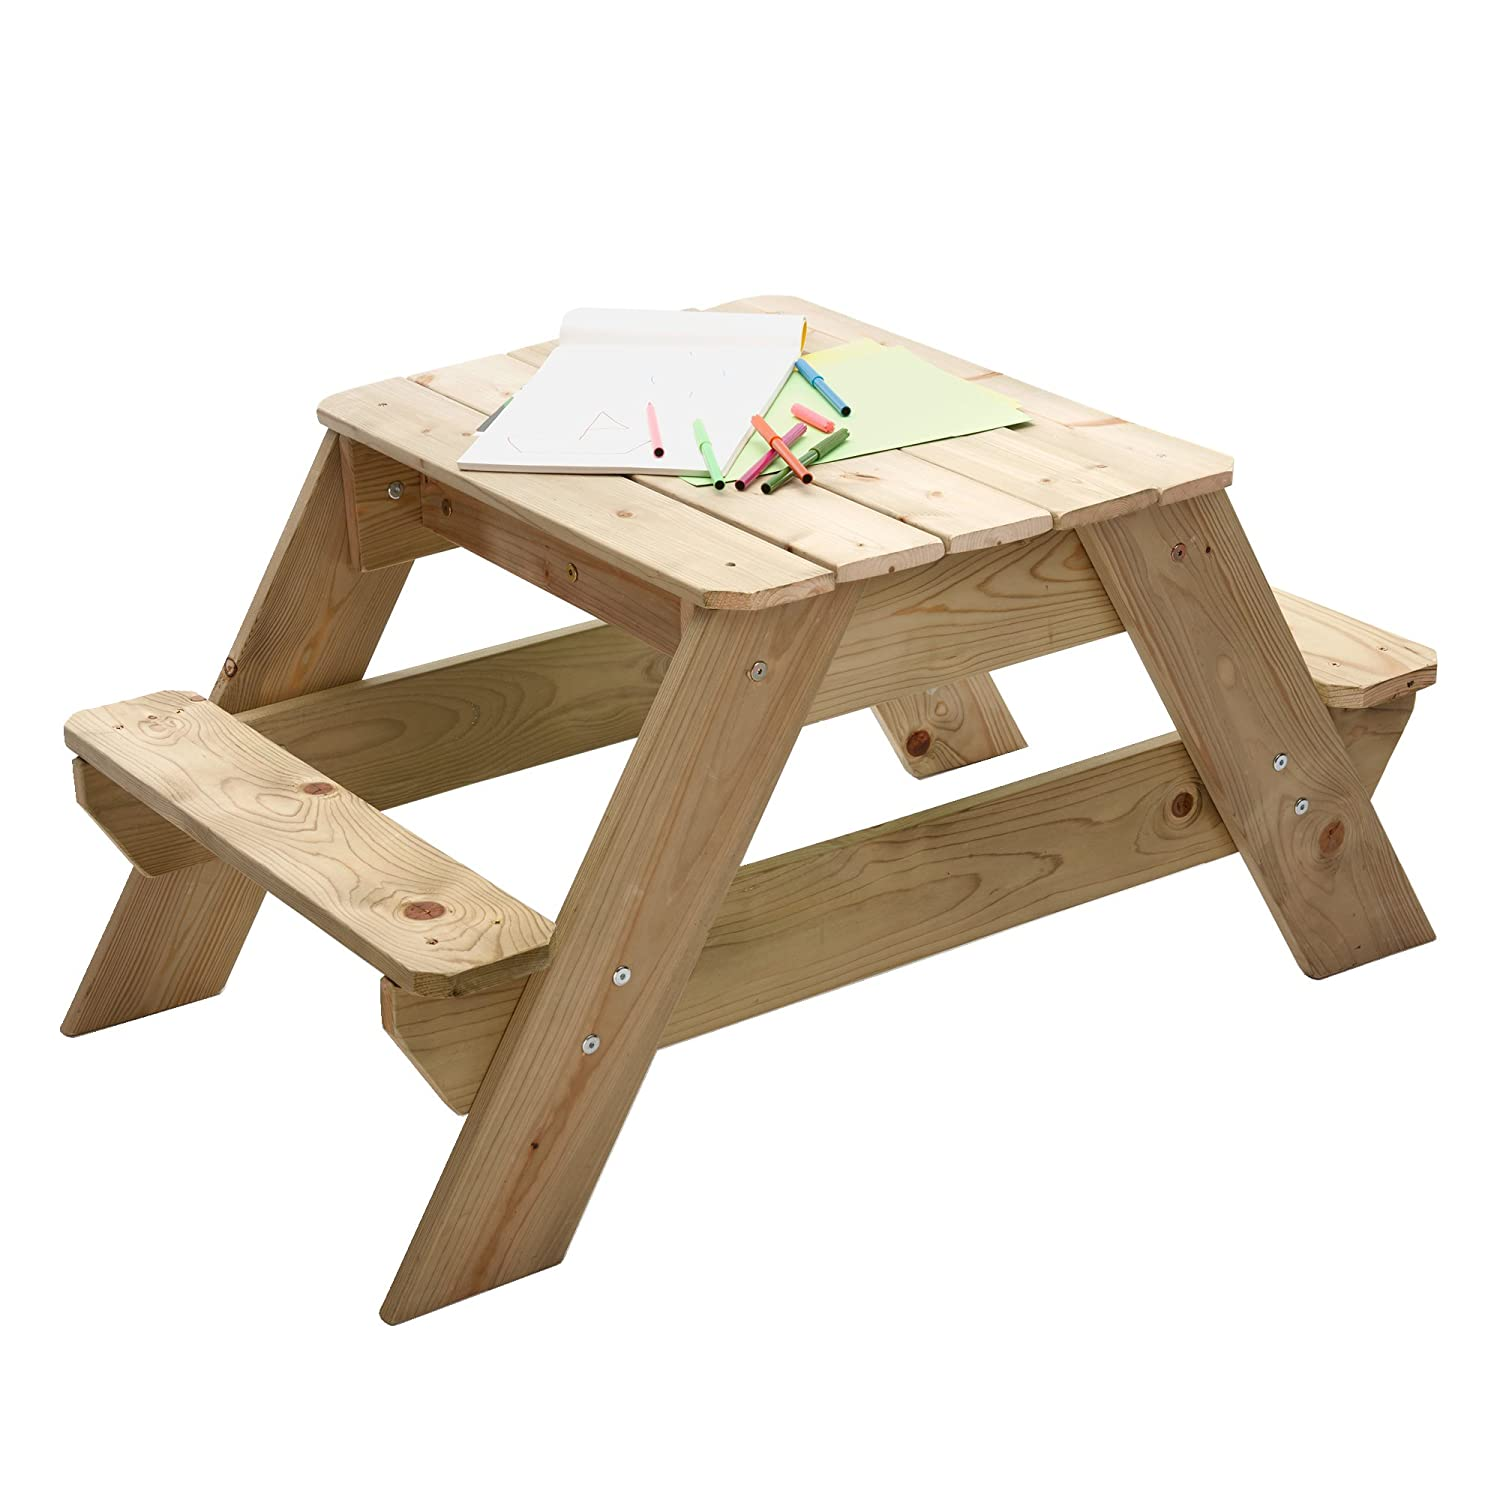 TP Toys 285 Picnic Table and Sand Pit